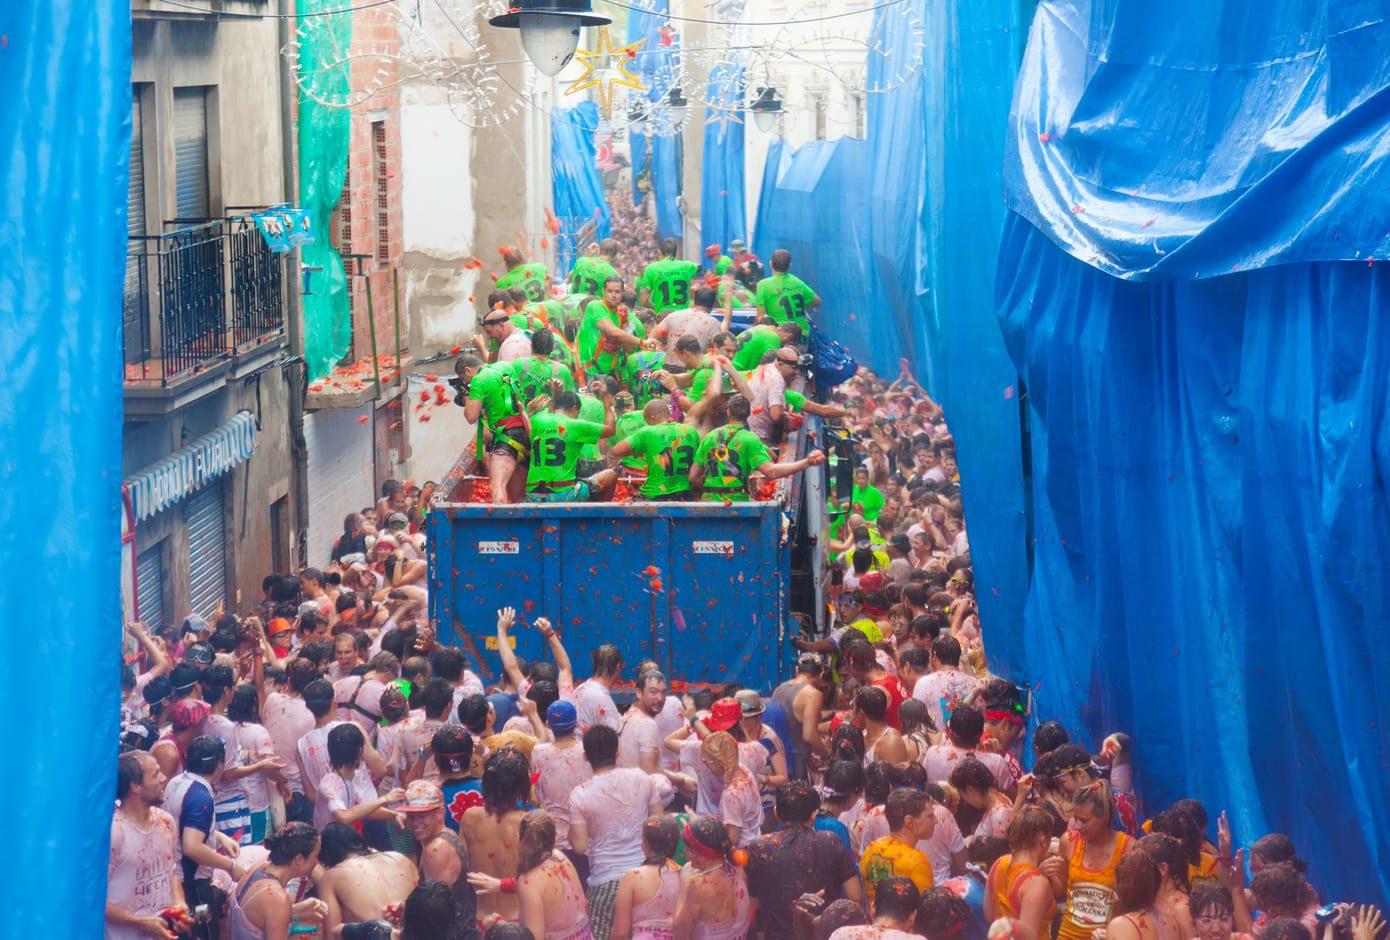 Battle of tomatoes during La Tomatina festival, in Spain.